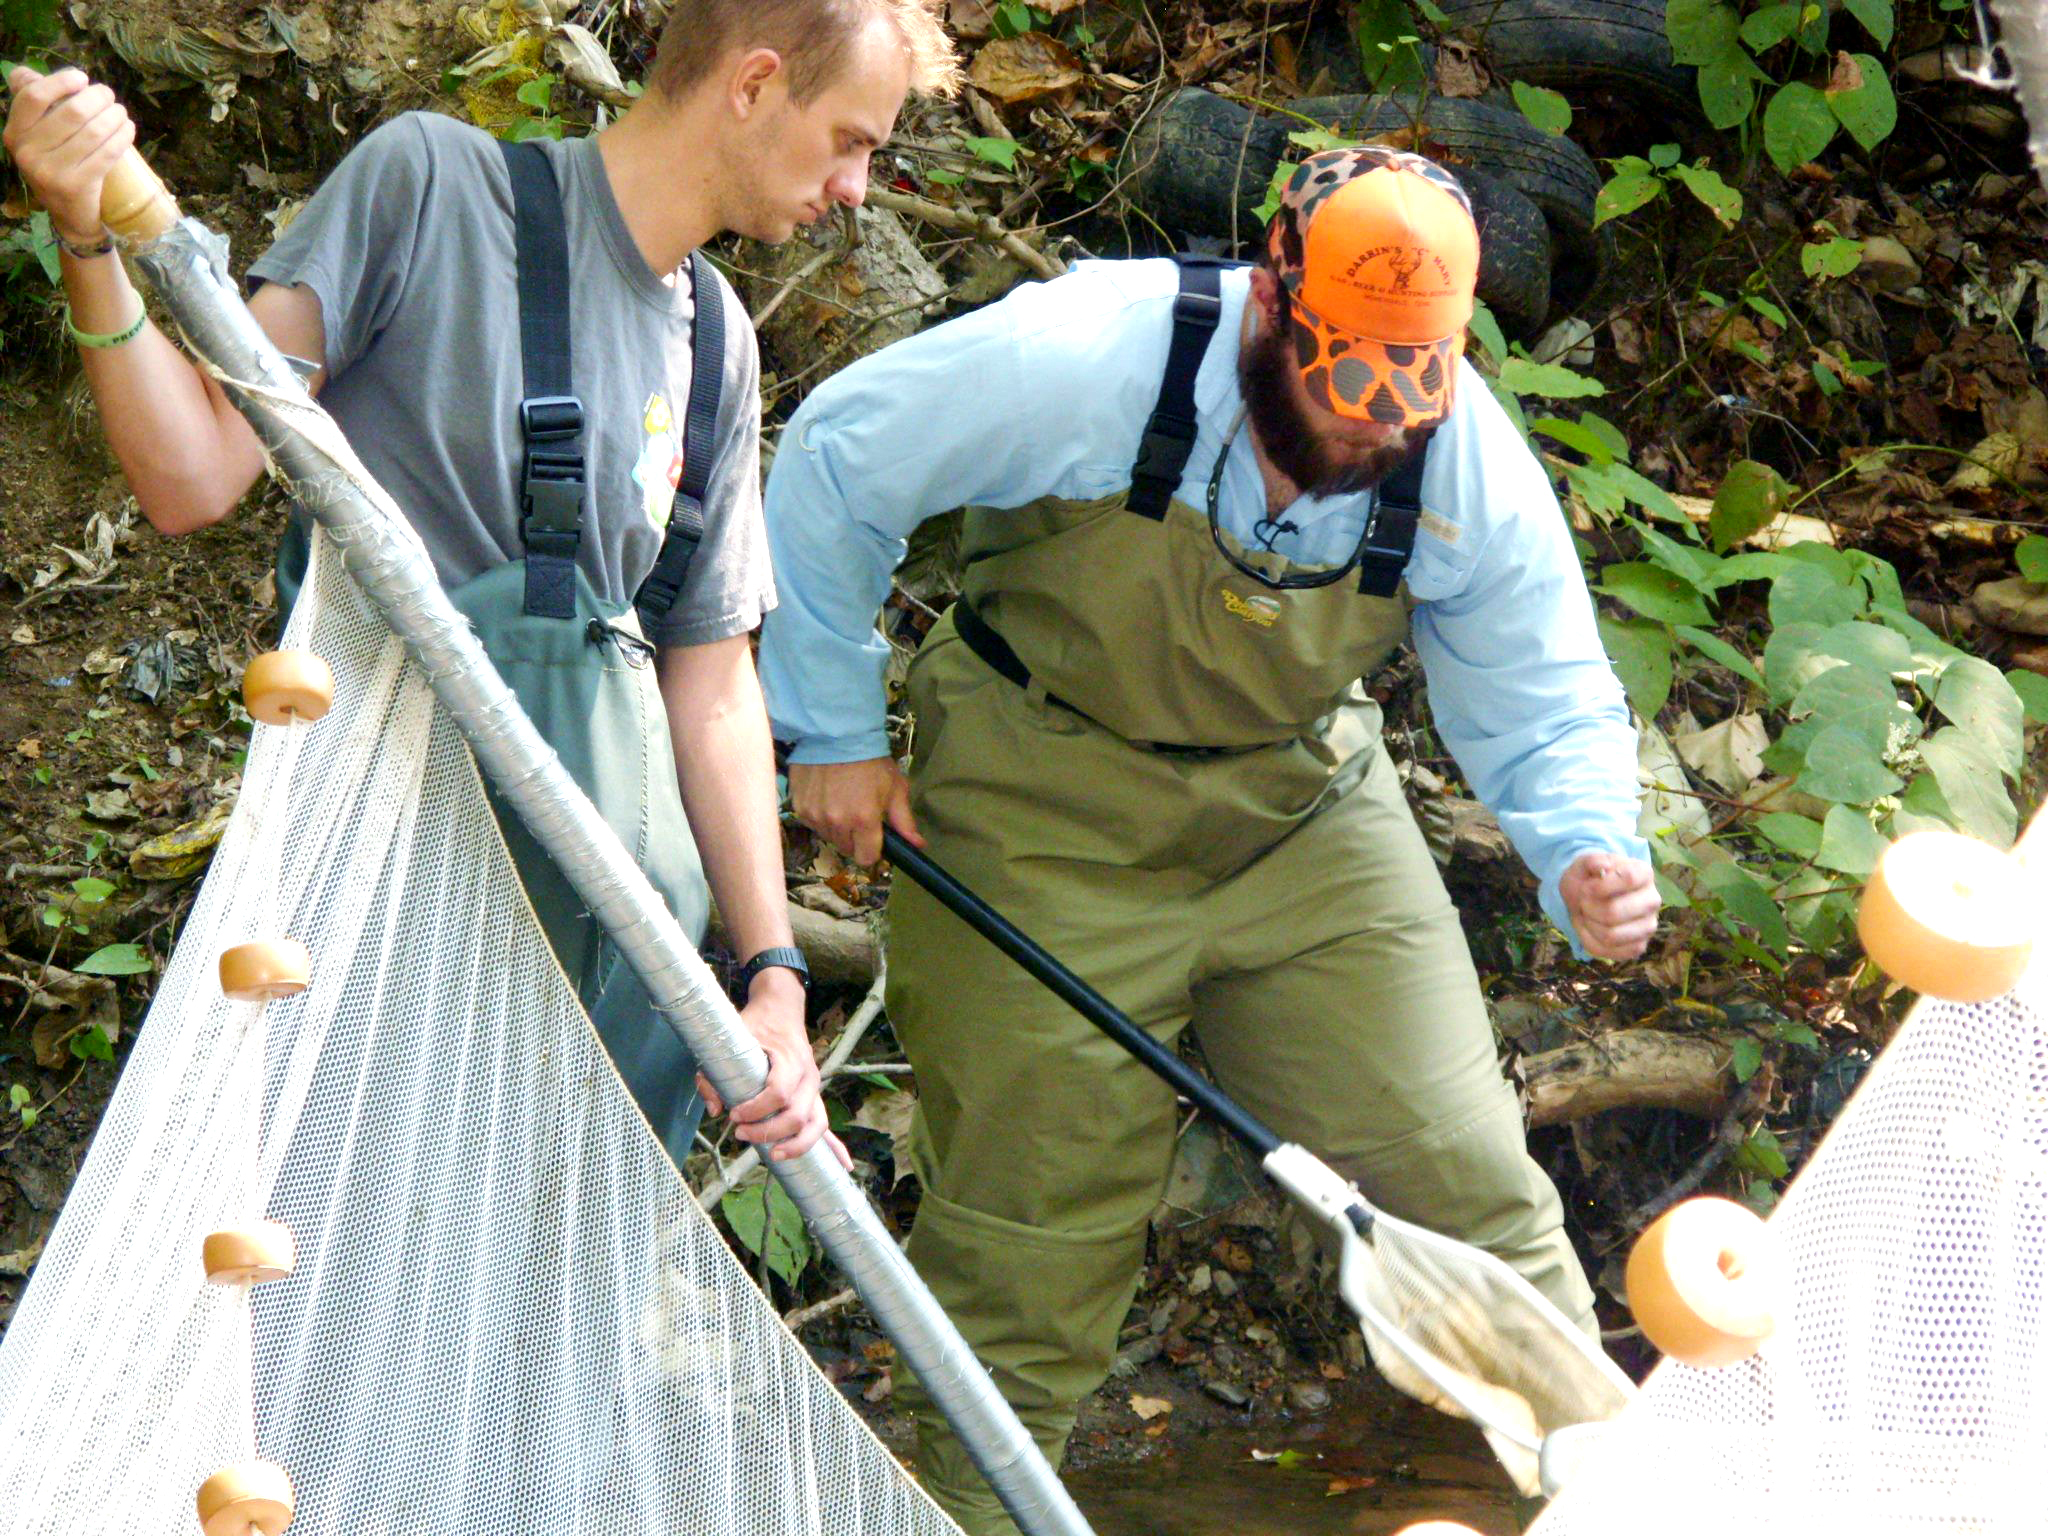 americorps member, Josh, wearing waders in a stream and holding a net to collect aquatic insects